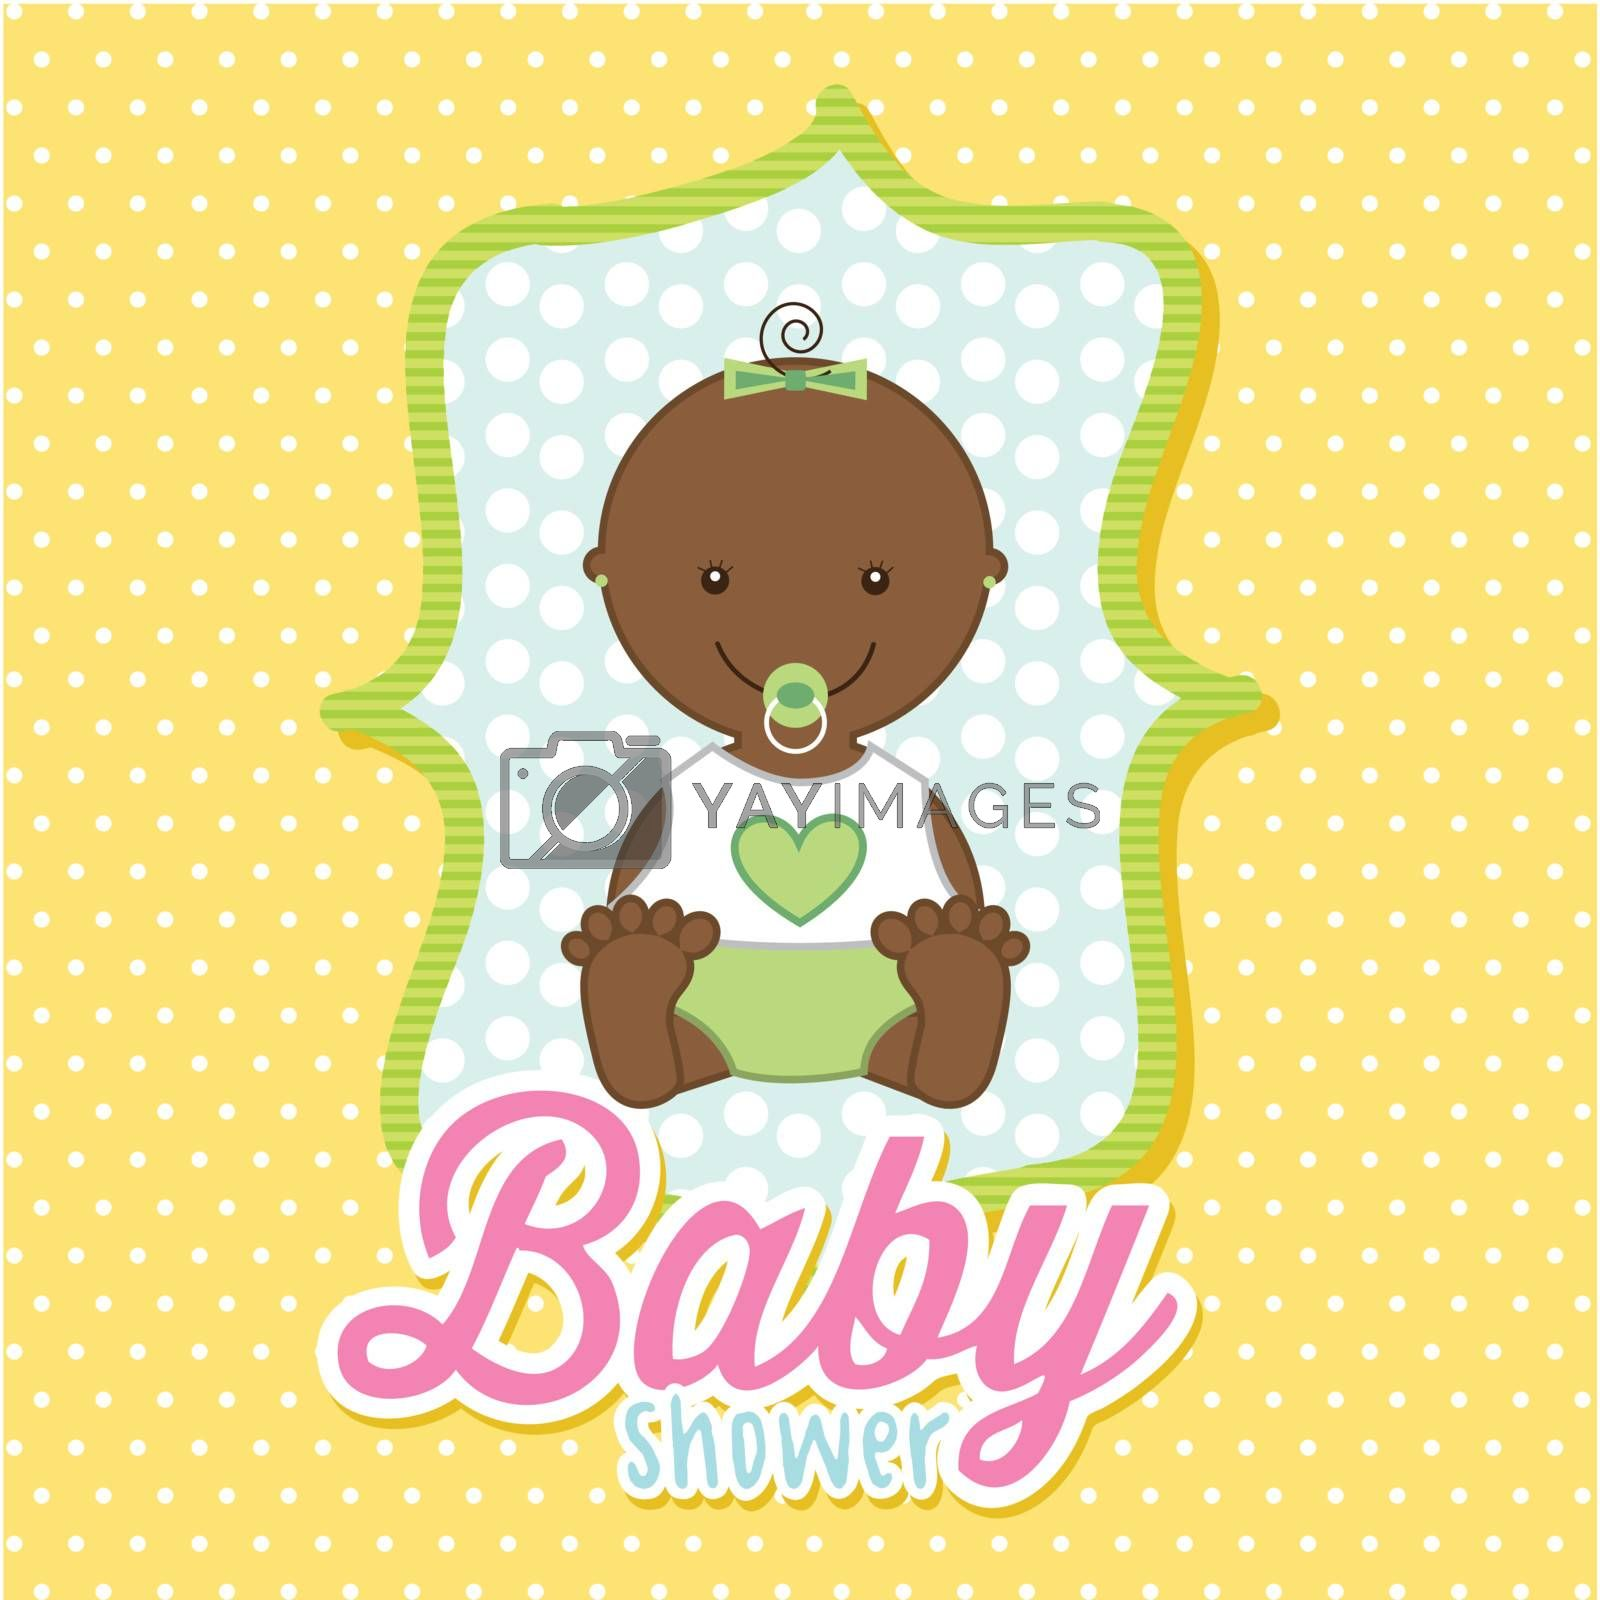 baby girl over yellow background. vector illustration